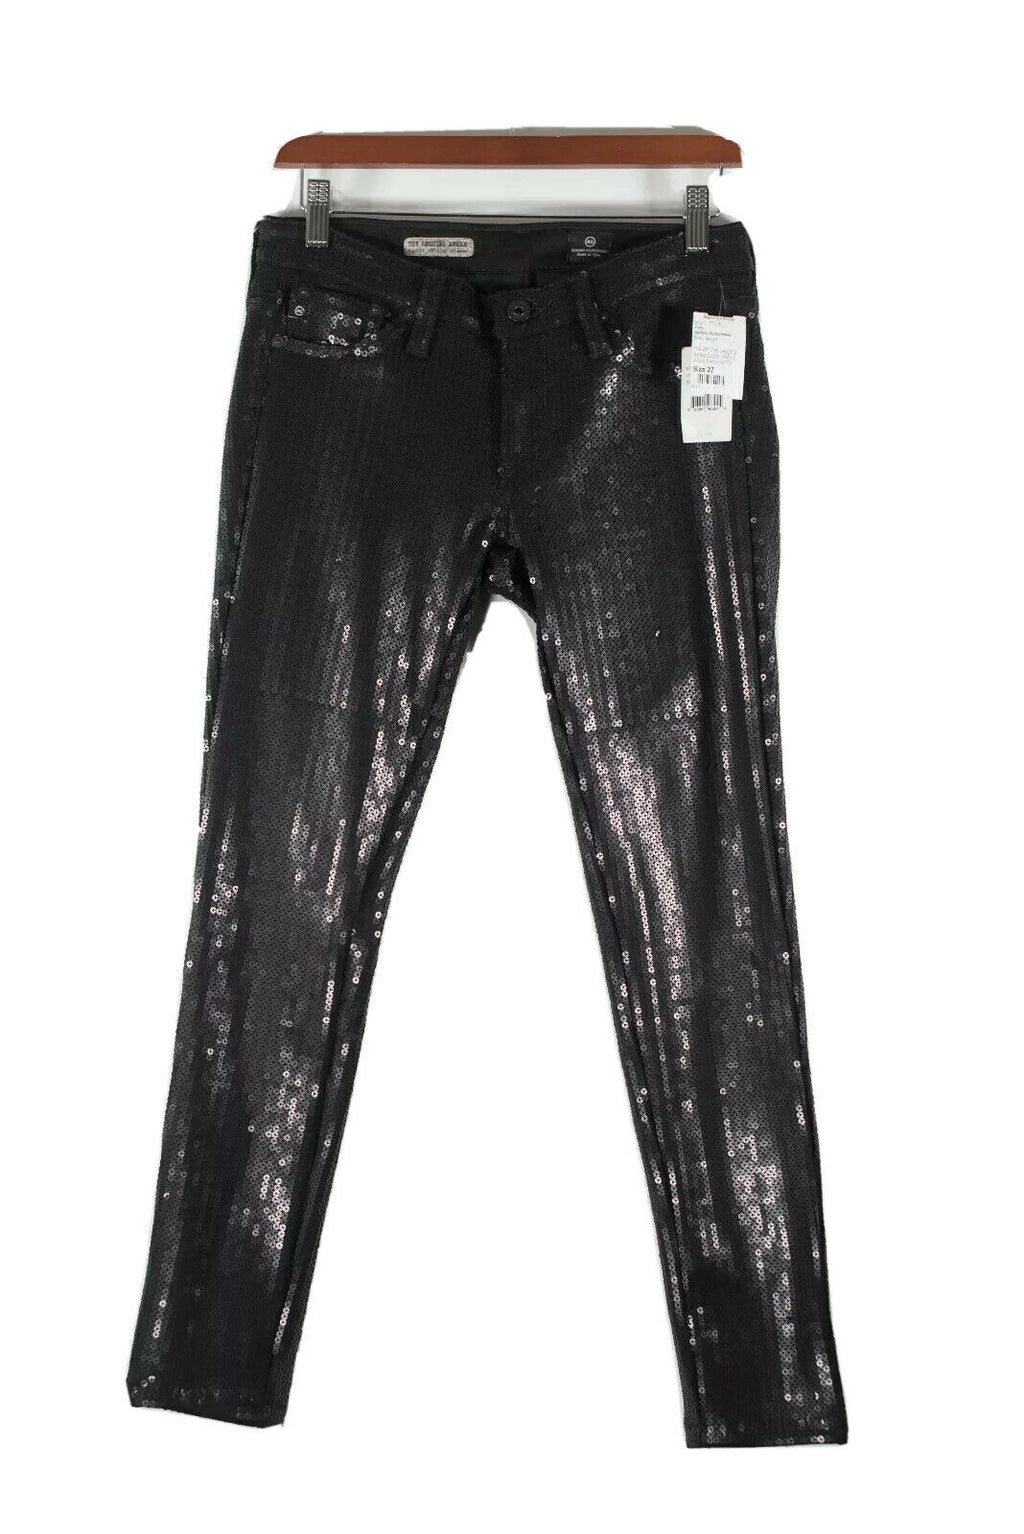 Adriano Goldschmied Womens Size 27 Black Sequin Ankle Leggings Pants Skinny NWT